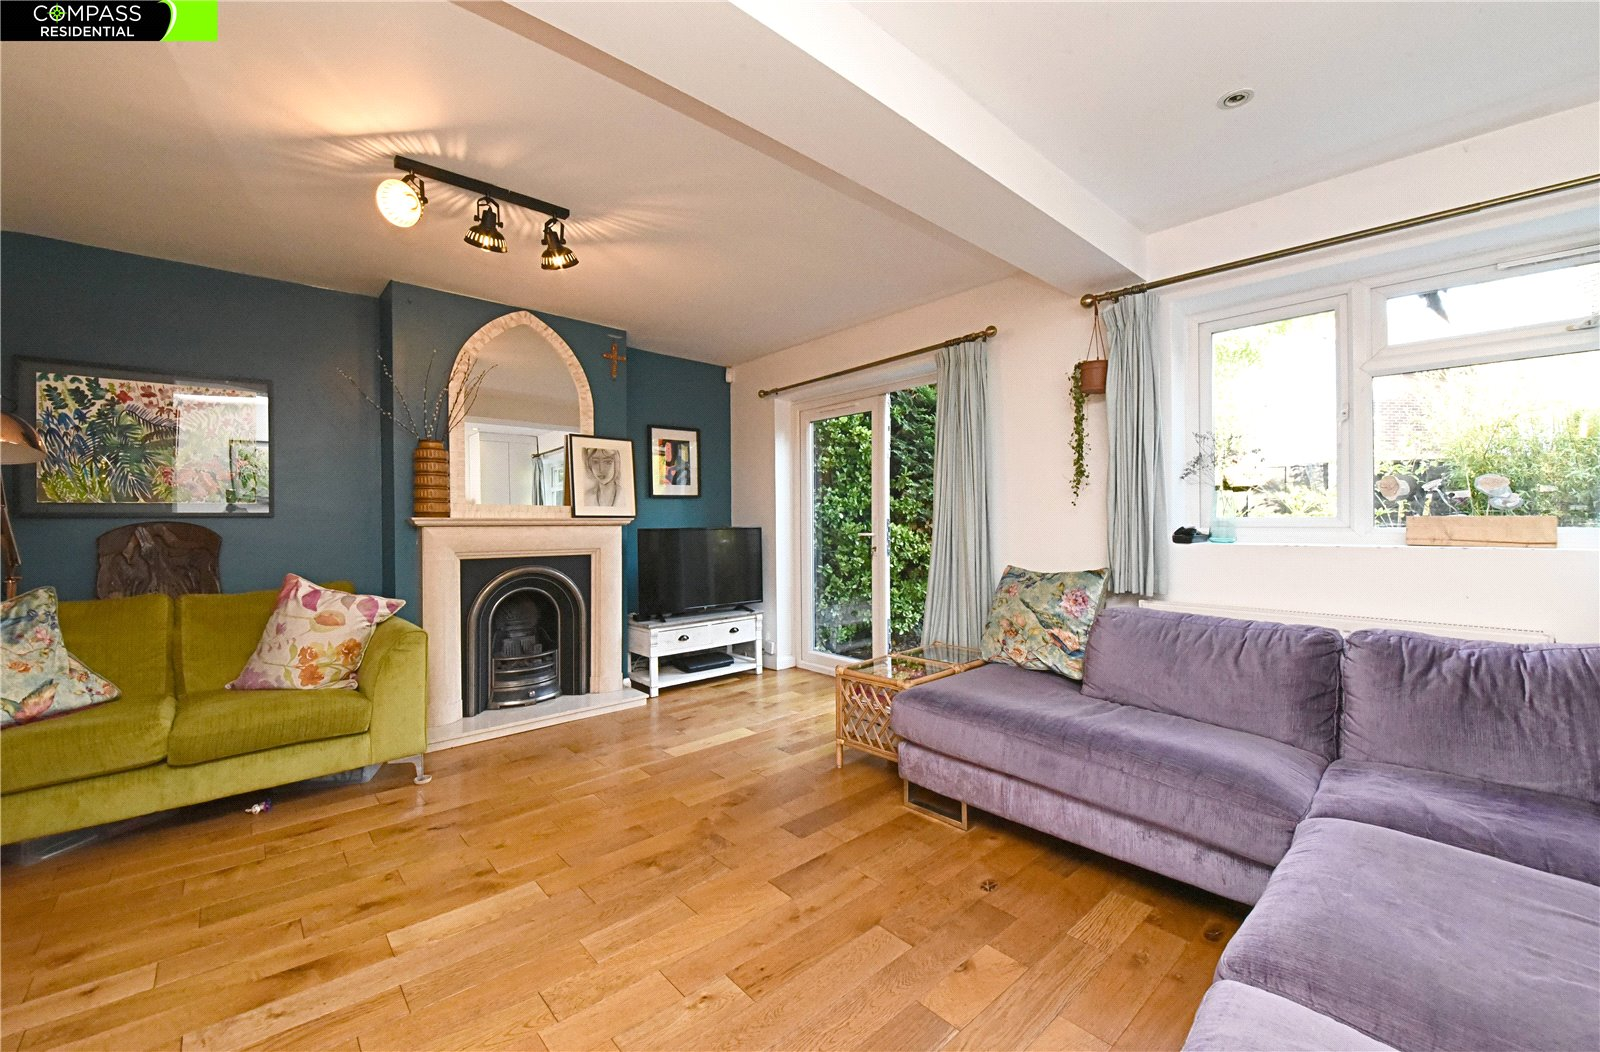 4 bed house for sale in Whetstone, N20 0HJ 1